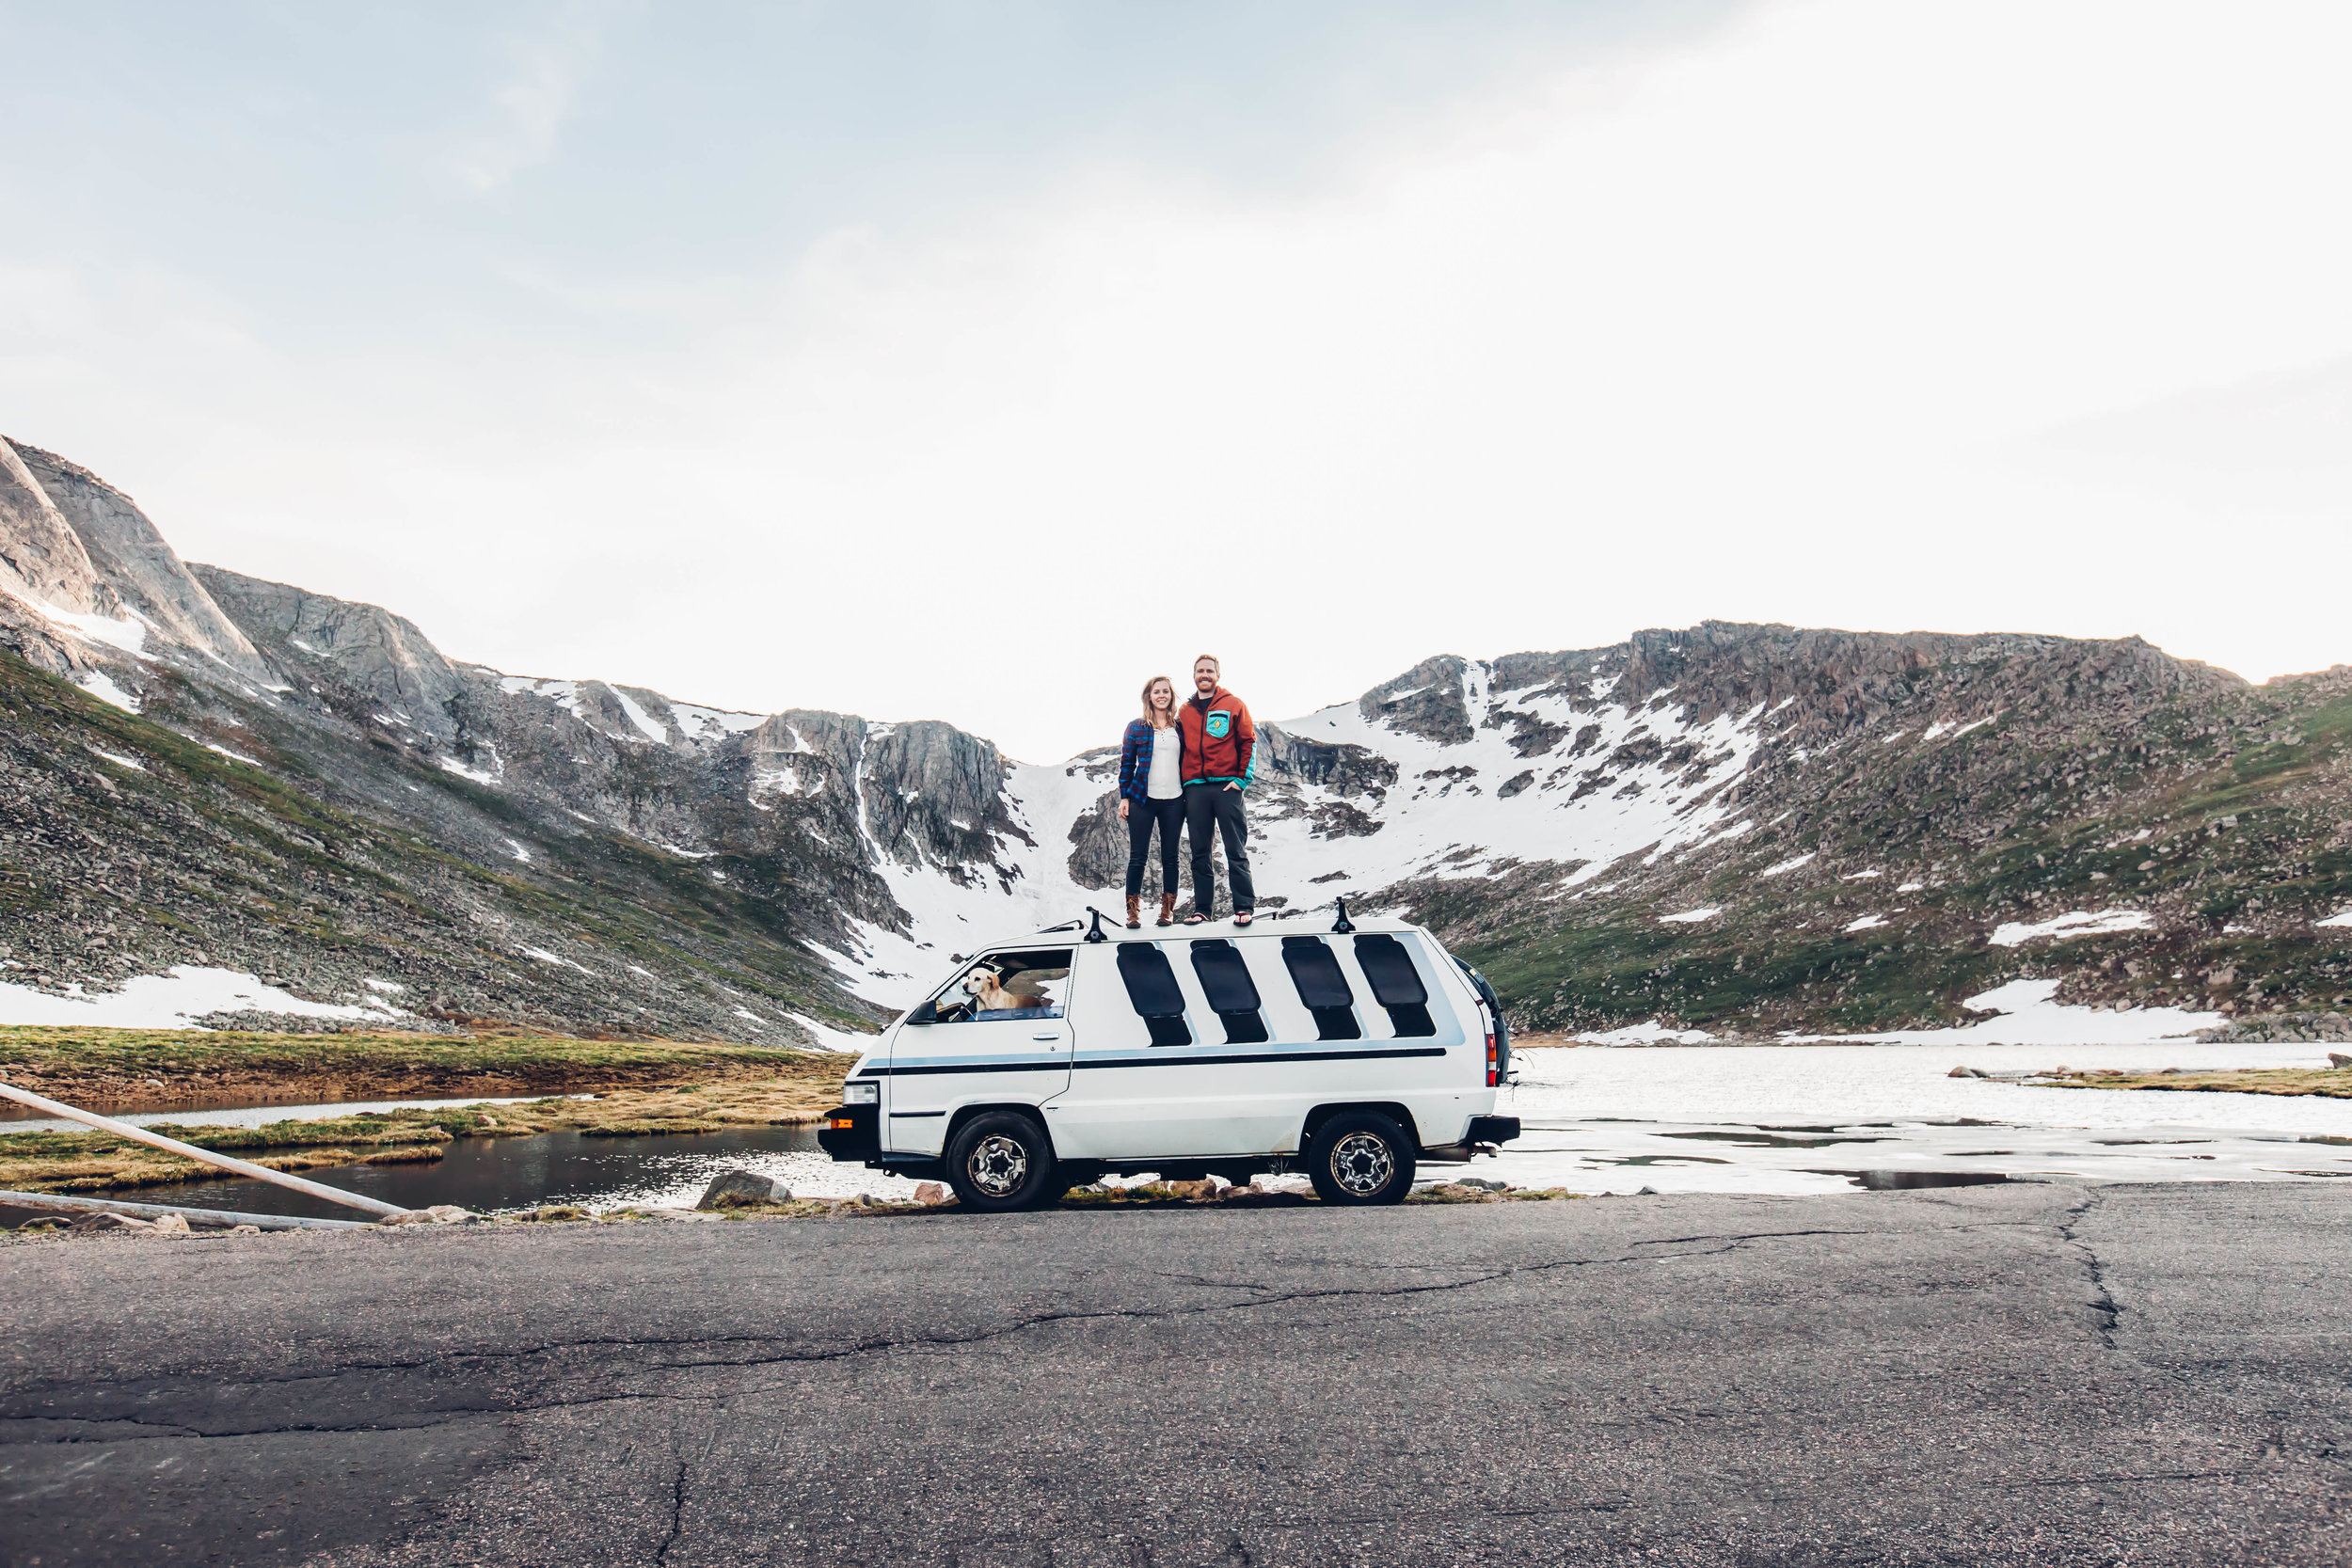 Kathleen and Greg live full time out of their camper and use their van, Right Lane Rhino, for longer road trips.